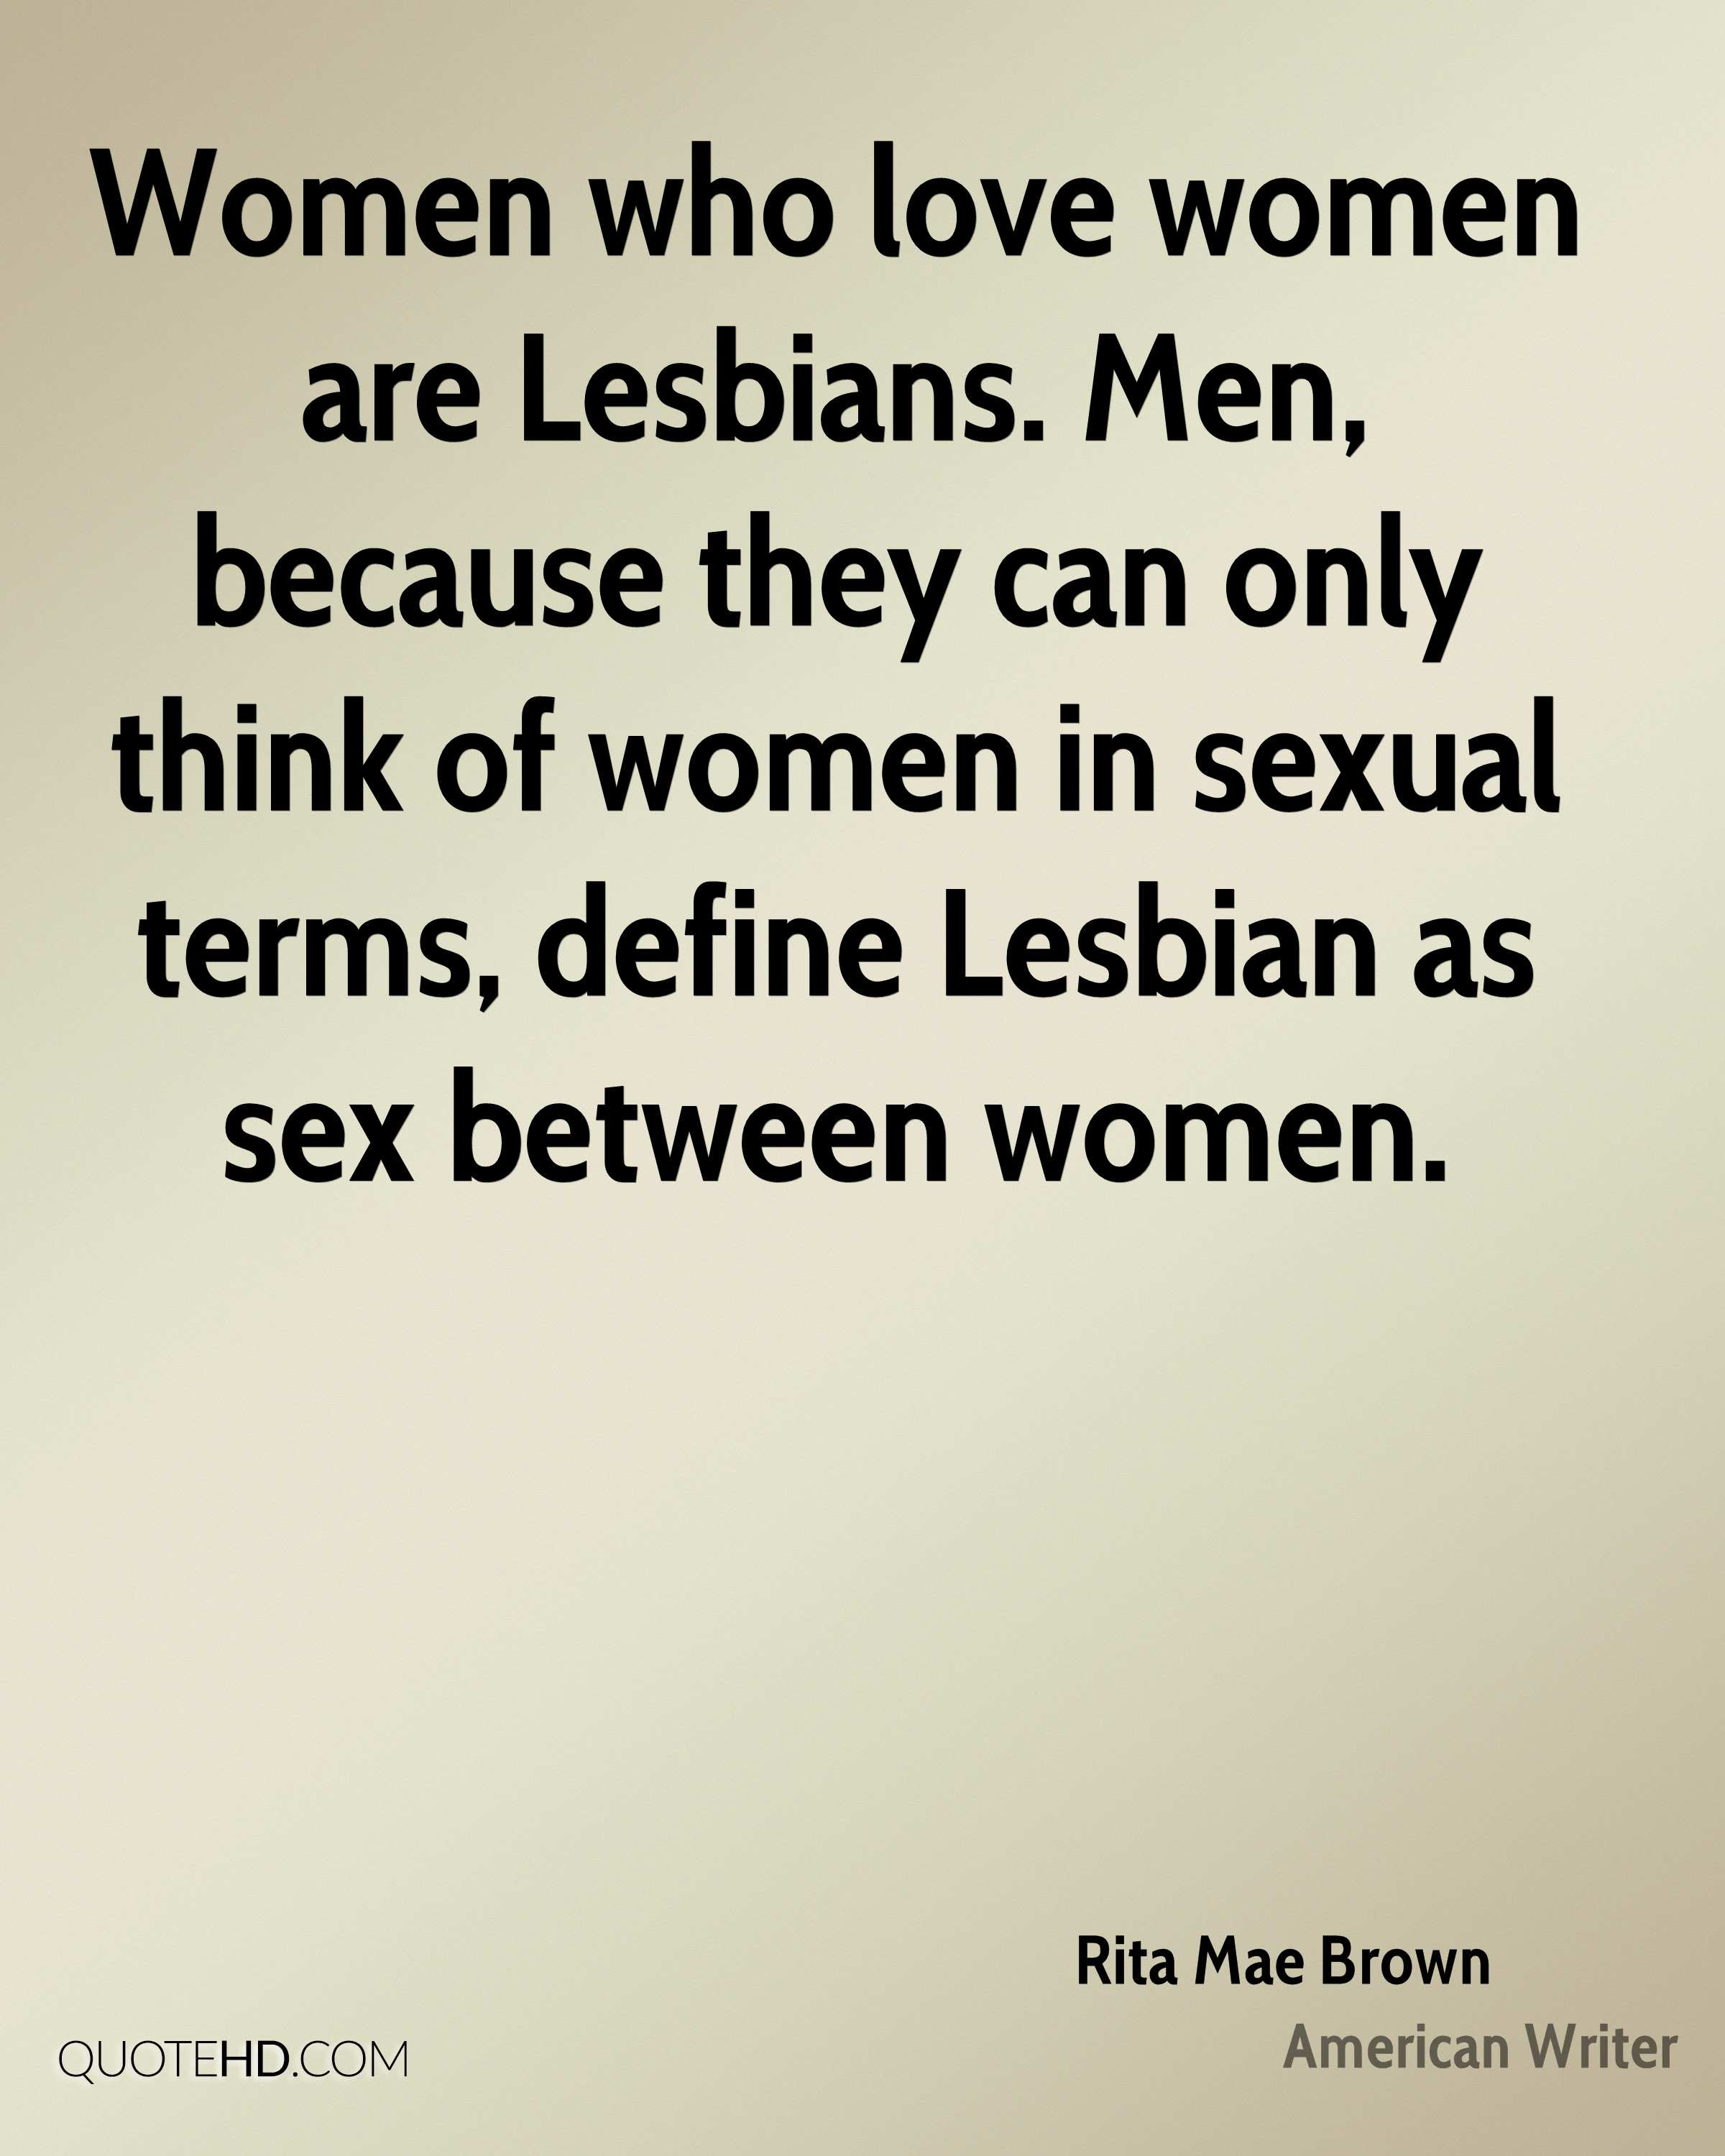 Women who love women are Lesbians Men because they can only think of women